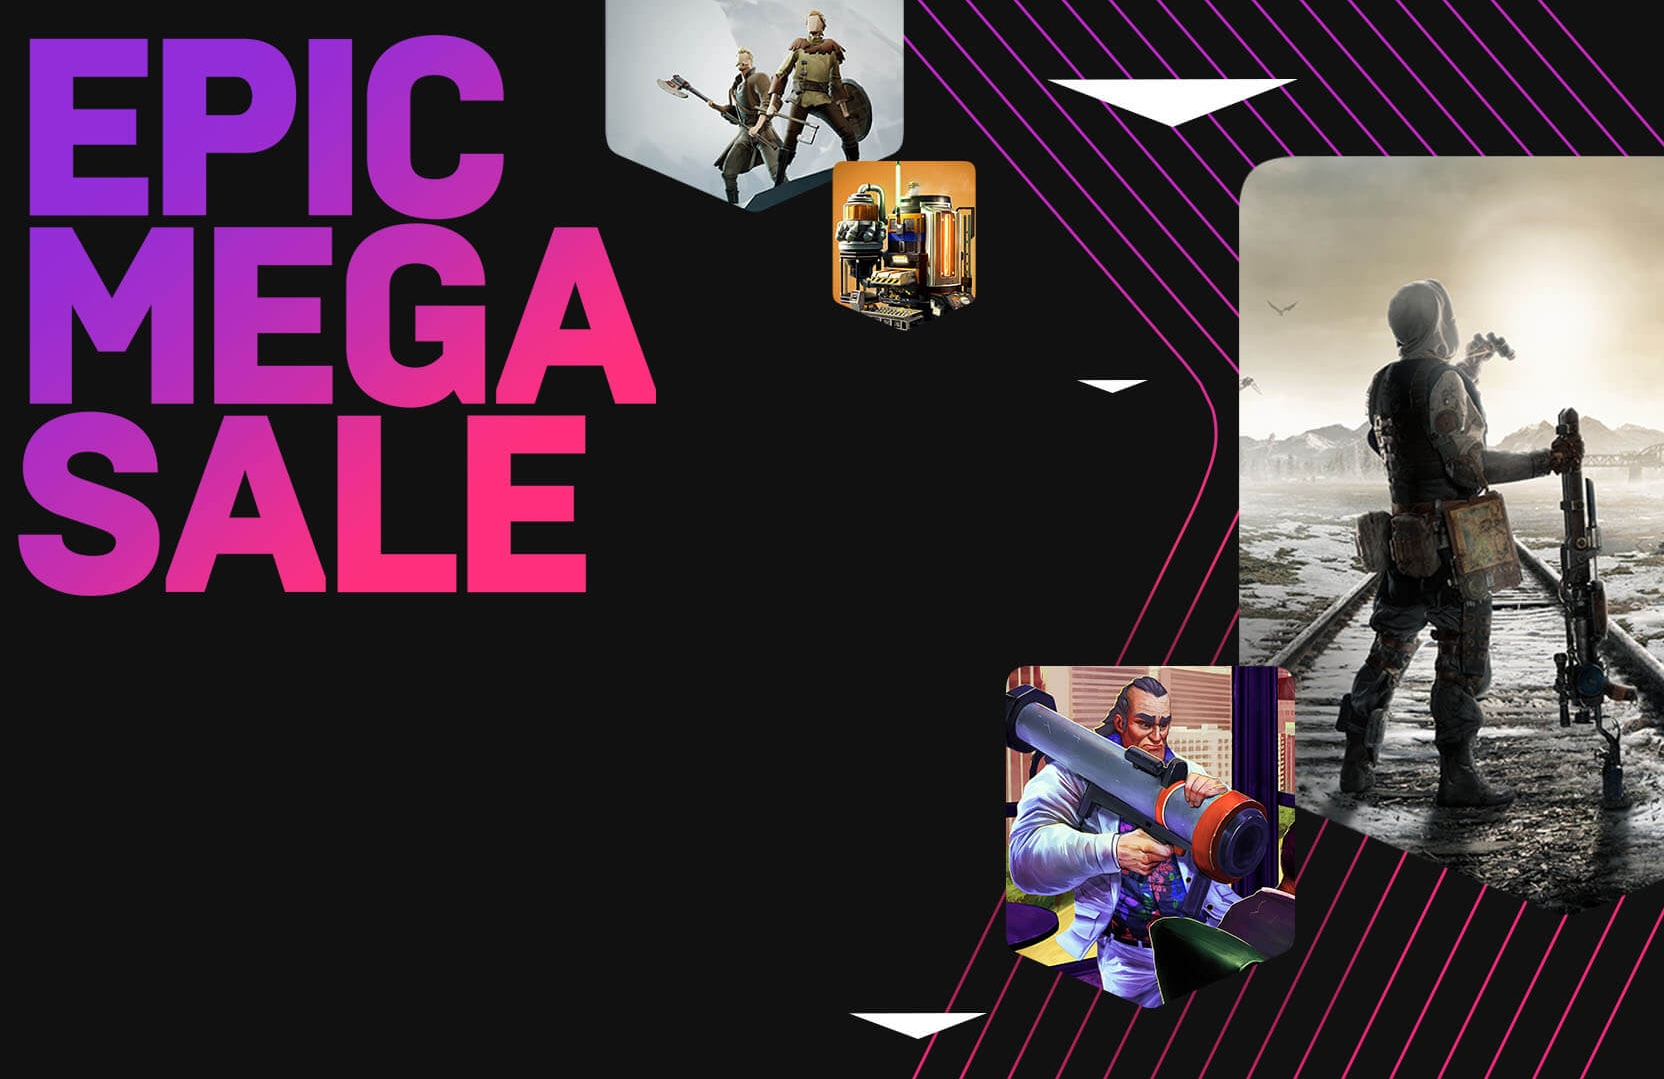 Epic Chaos Continues As Borderlands 3 Gets Removed From Epic Mega Sale